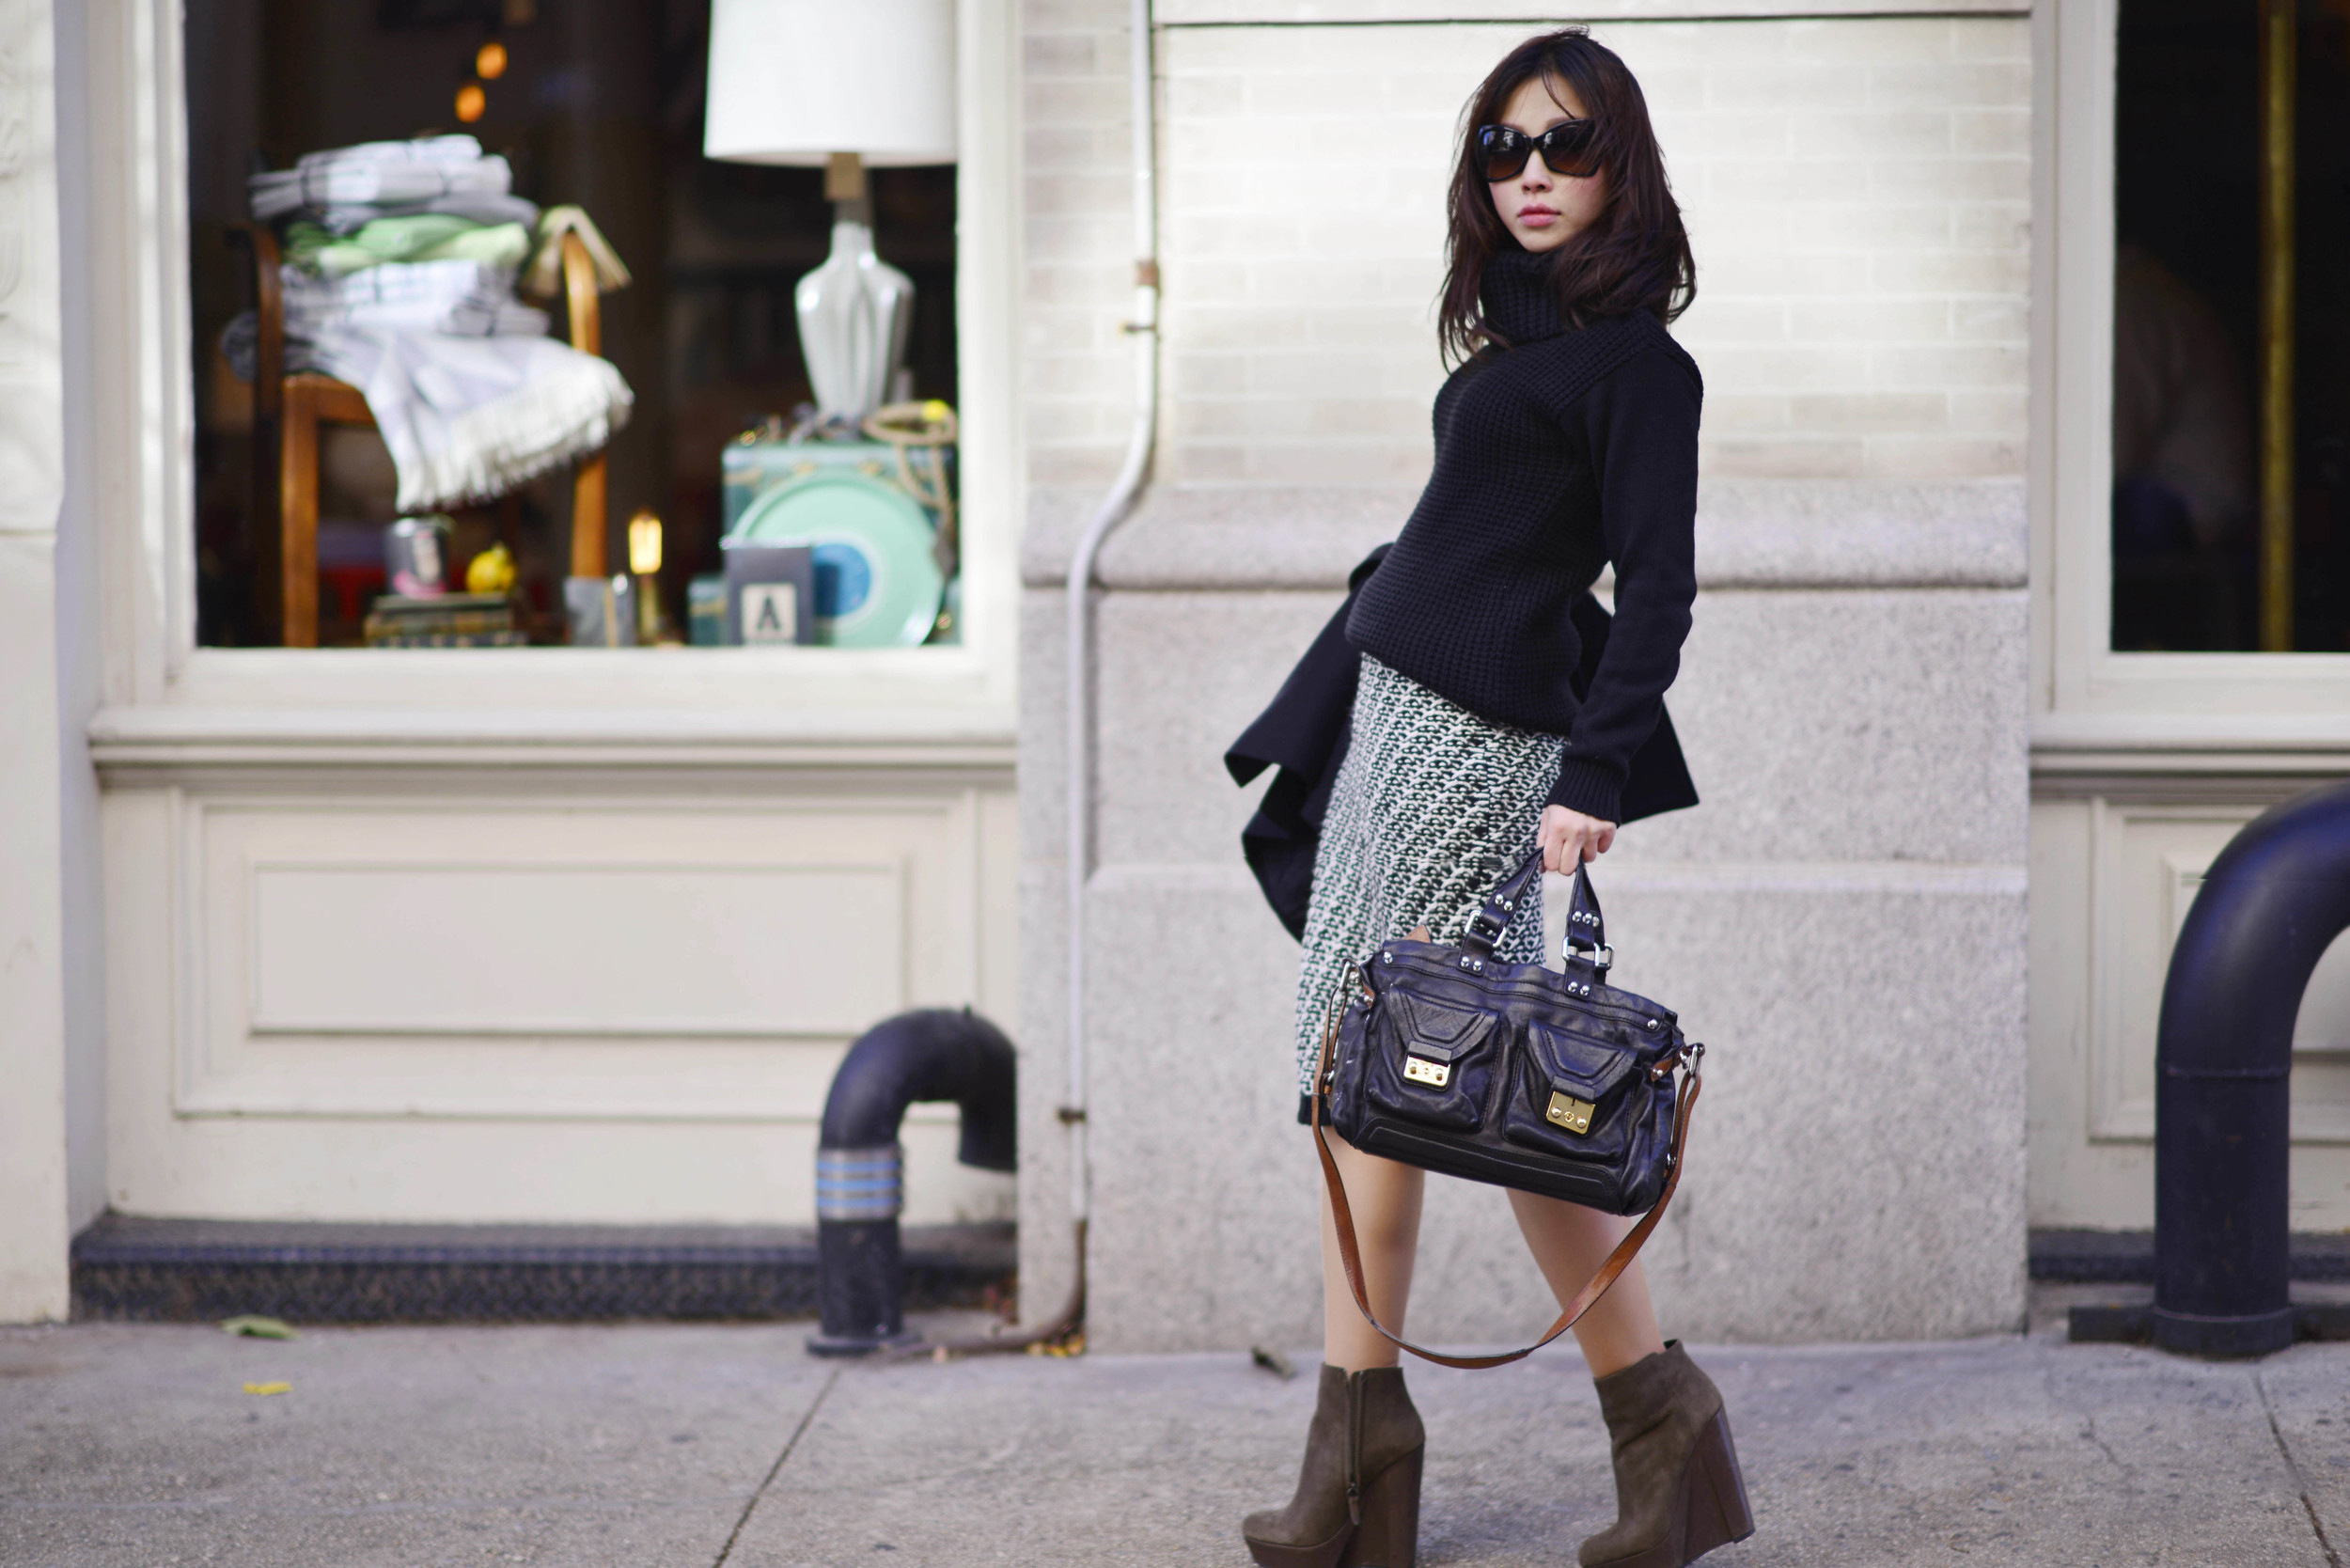 Knit sweater and skirt.JPG